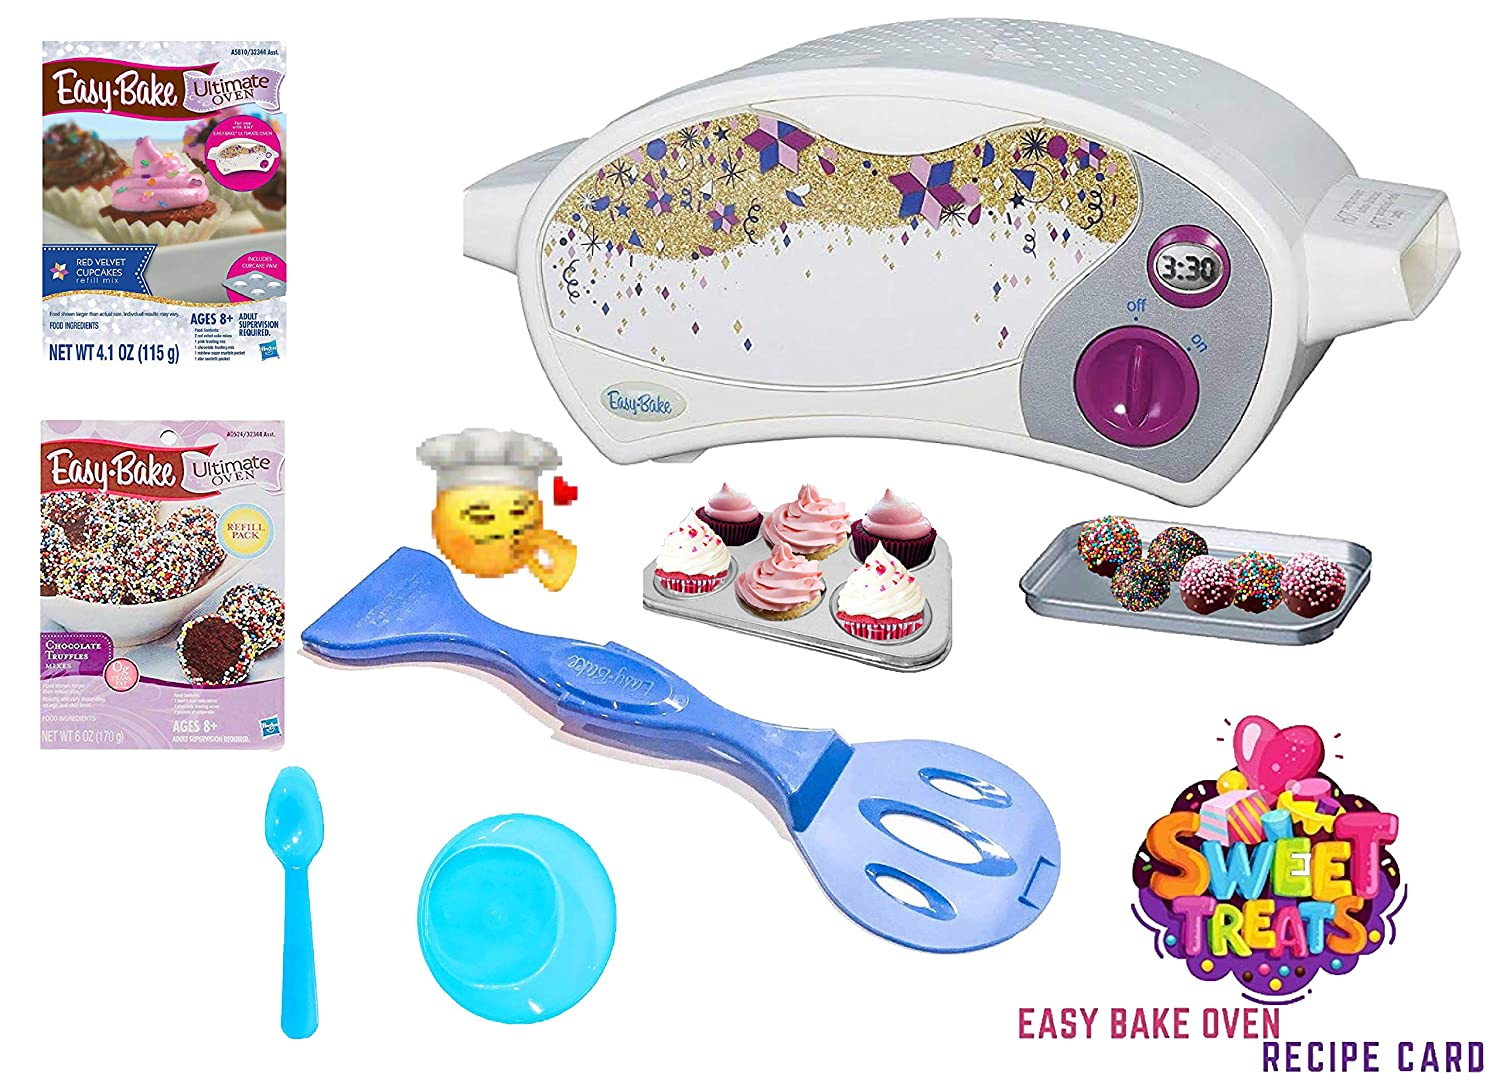 Easy Bake Ultimate Oven Baking Star Edition + 2 Oven Refill Mixes + 2 Sweet Treats Tasty Oven Recipes + Mixing Bowl and Spoon (5 Items Total) (Blue)